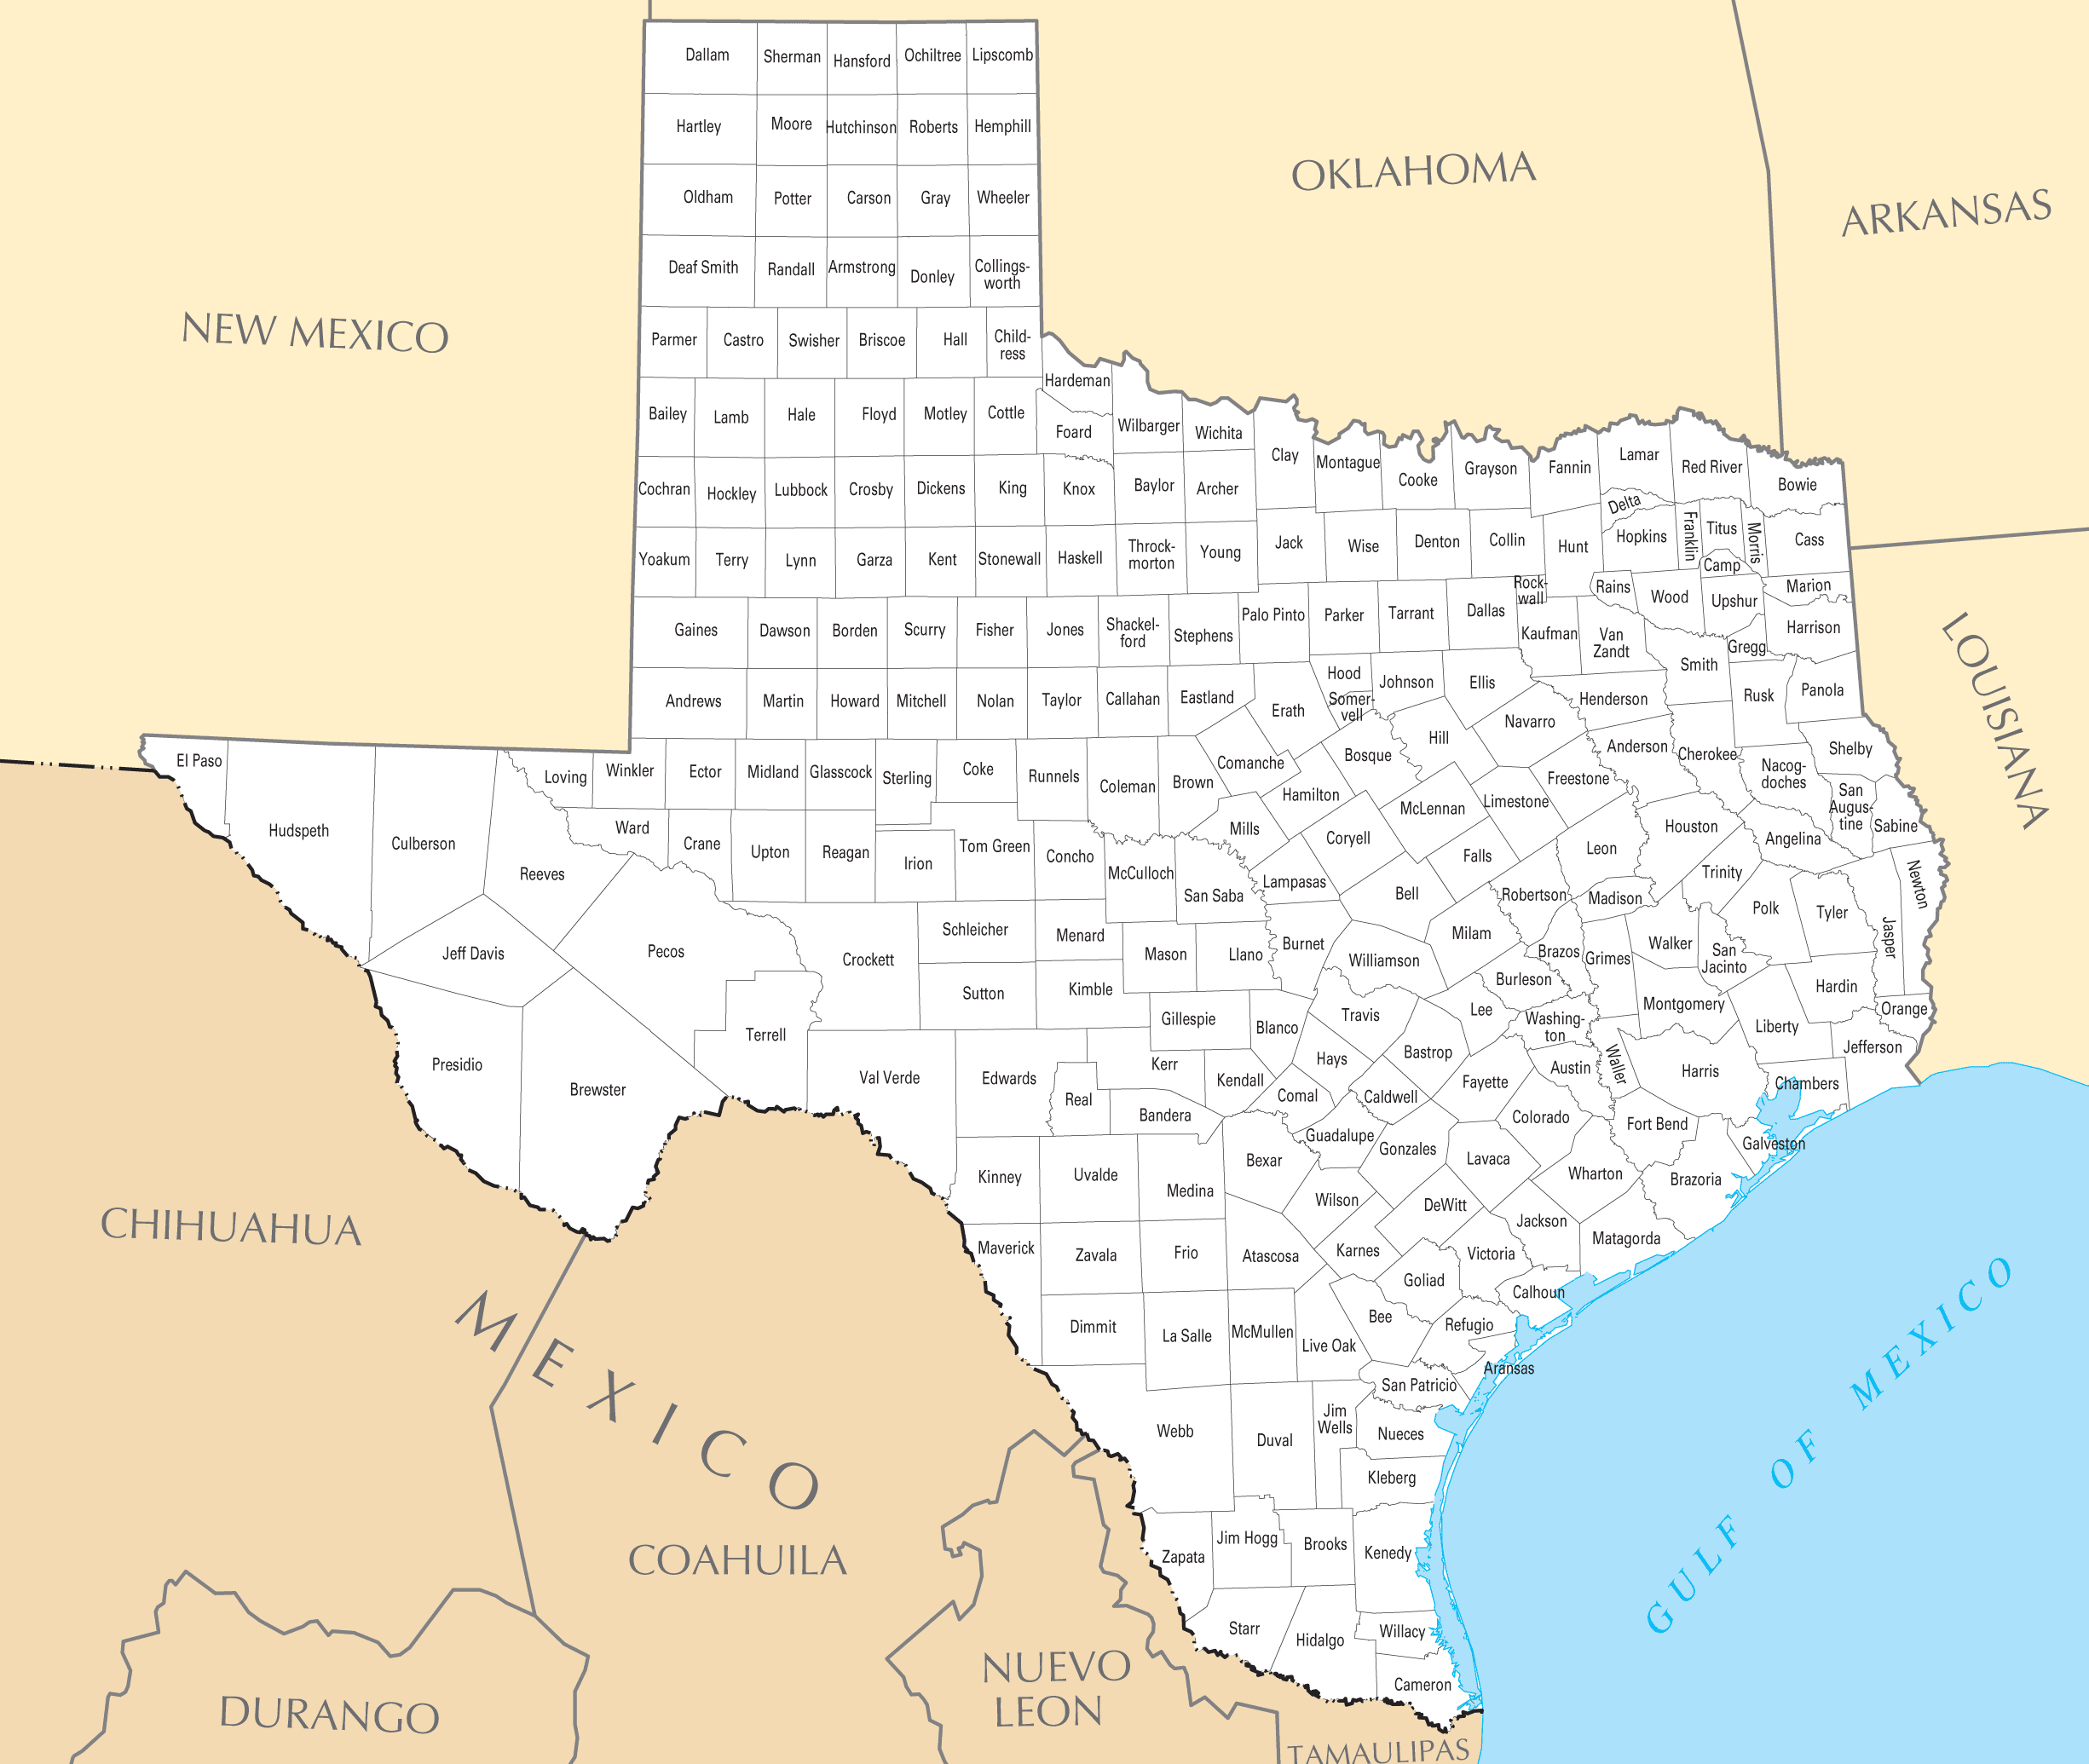 Map Texas Counties And Travel Information | Download Free Map Texas - Google Maps Texas Counties